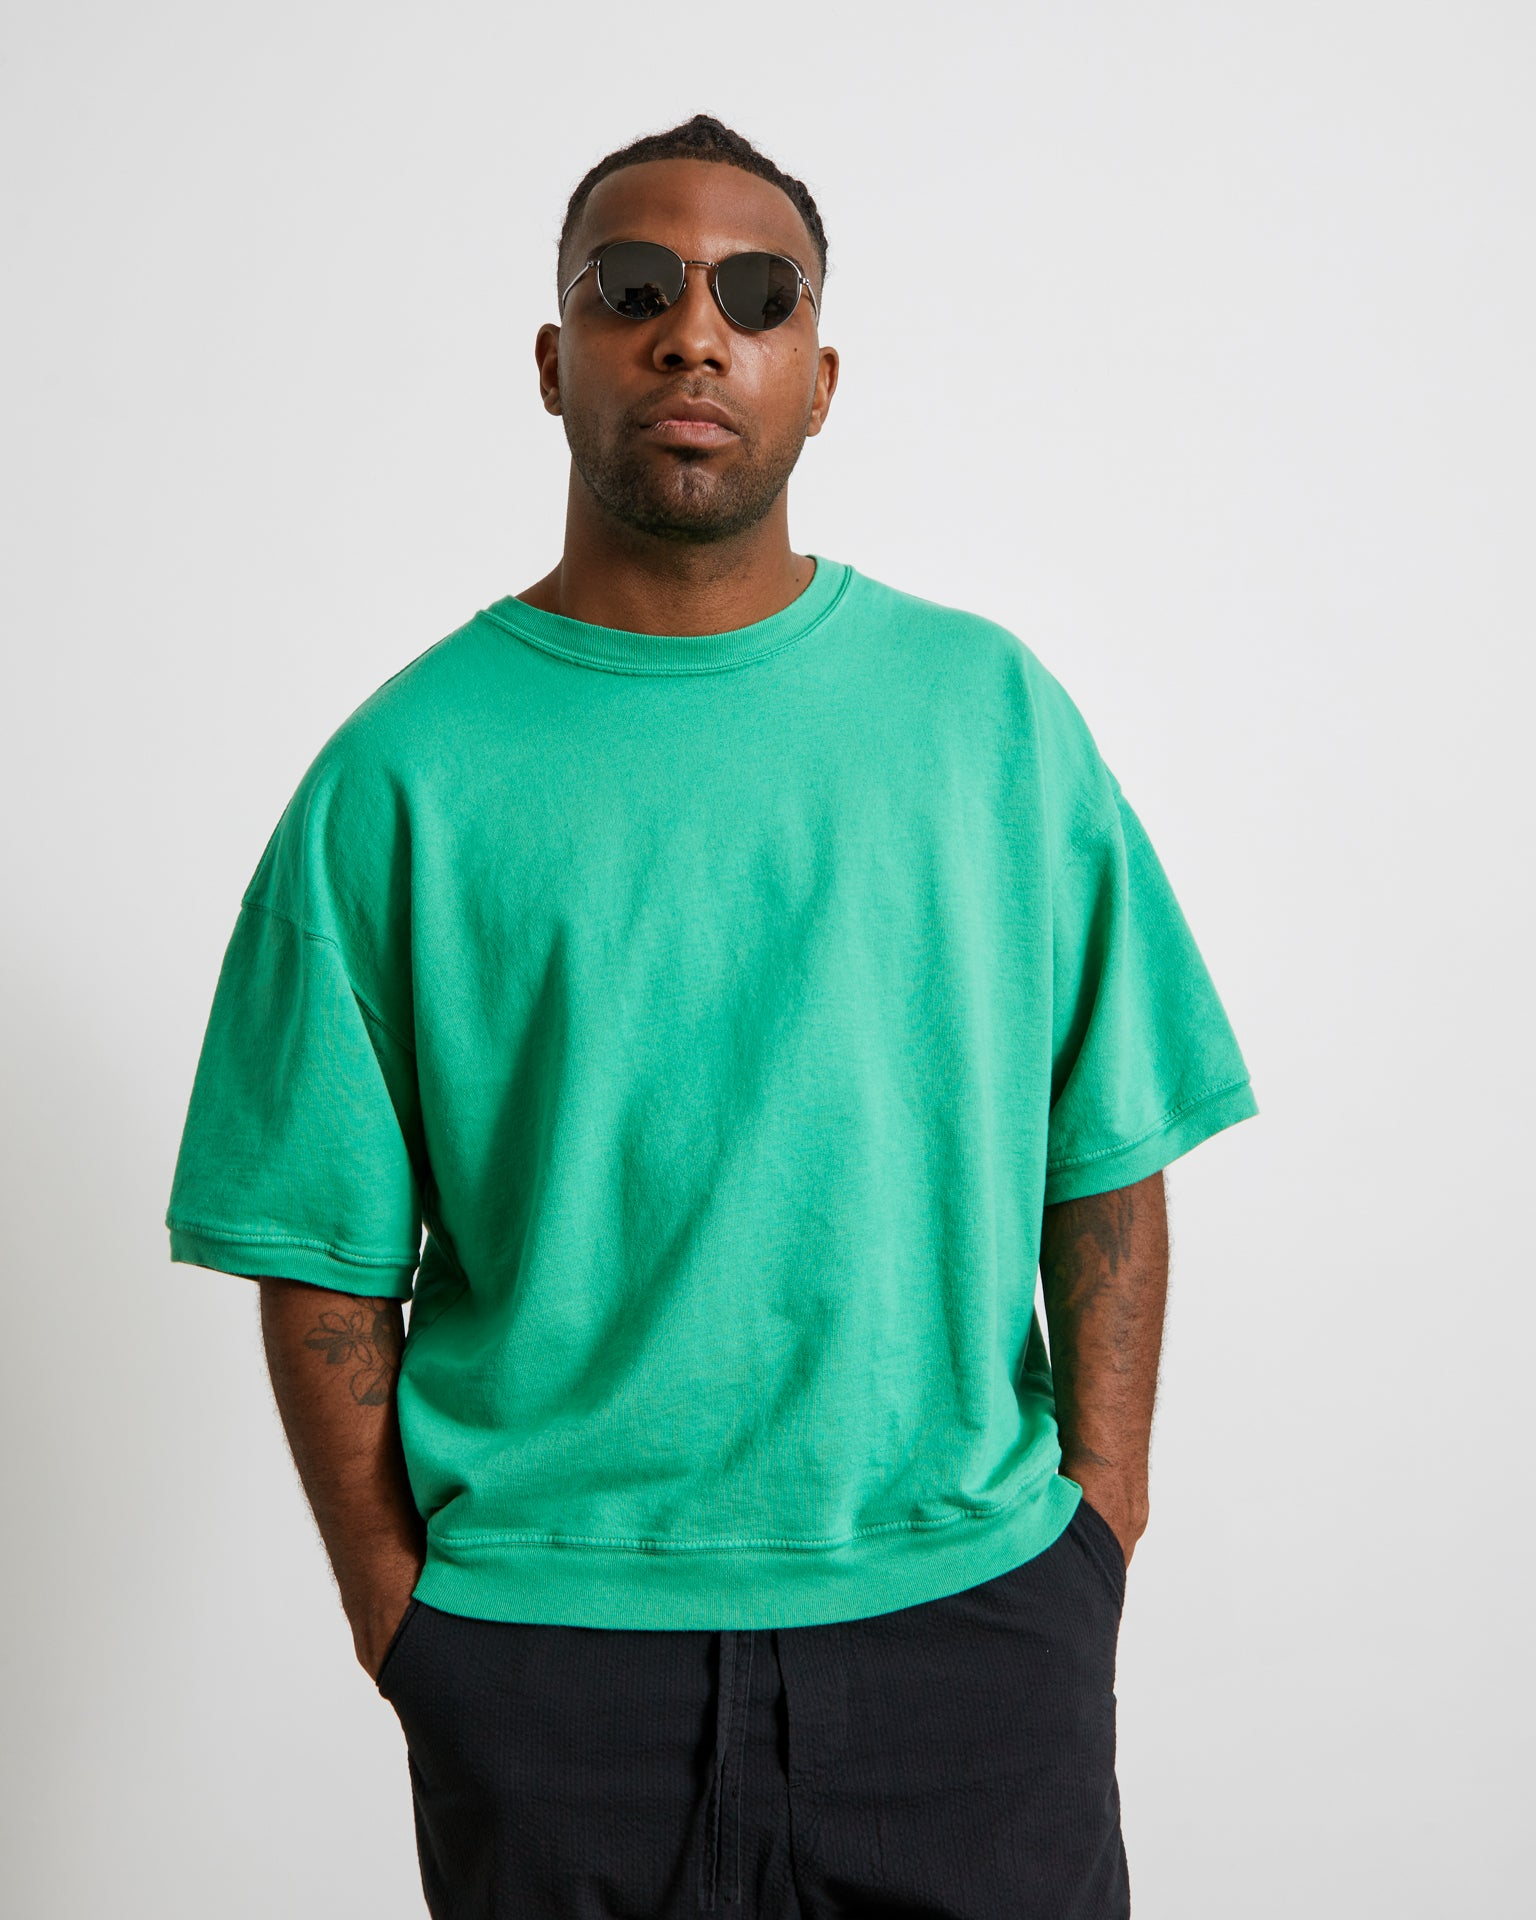 Cropped Short Sleeve Sweatshirt in Green